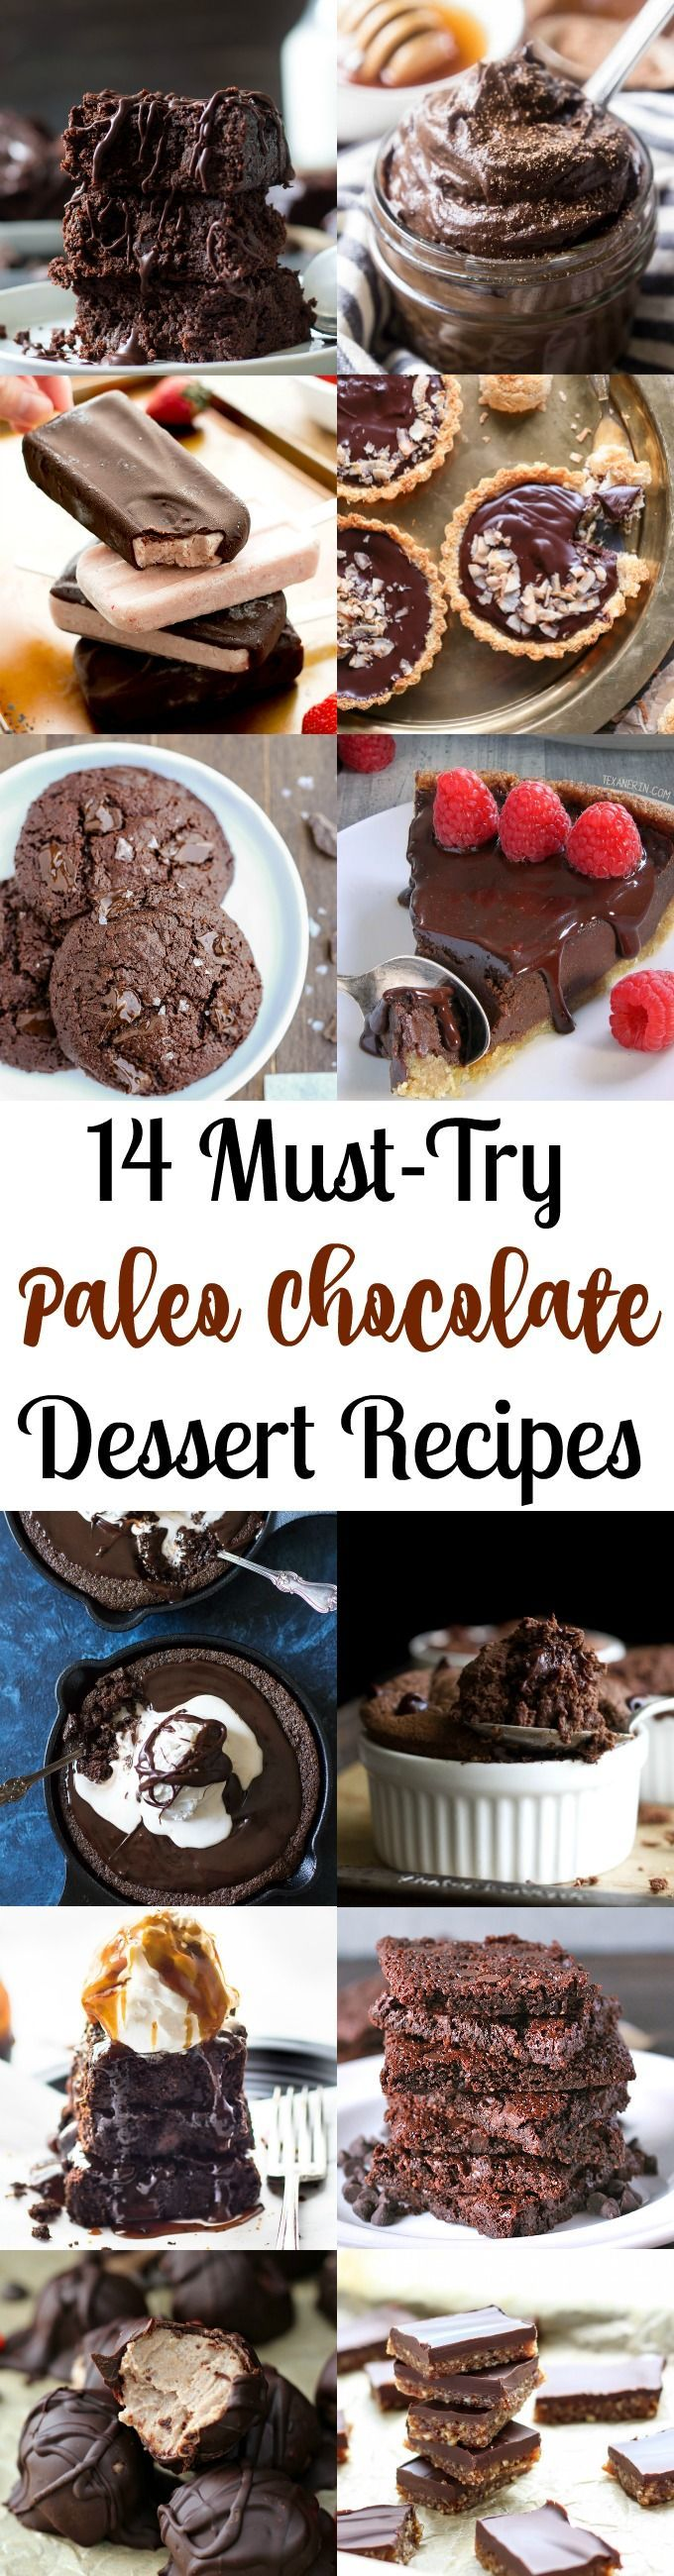 14 Must-Try Paleo Chocolate Dessert Recipes | The Paleo Running Momma: